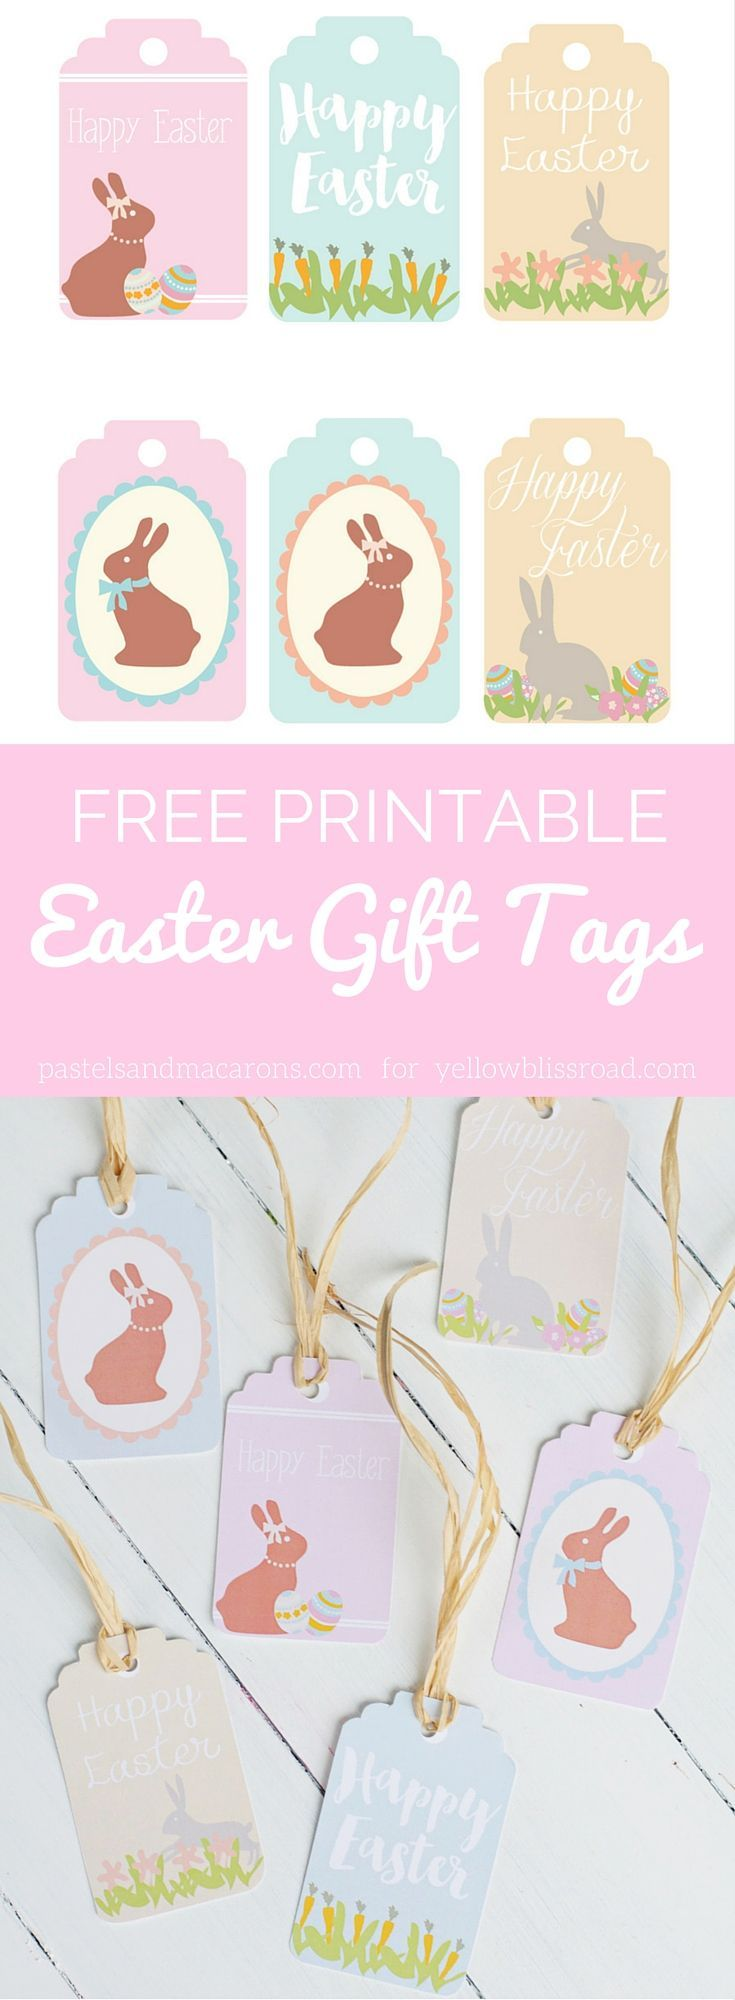 Free printable easter gift tags download these free printable easter gift tags for all your gifts this easter you get negle Gallery